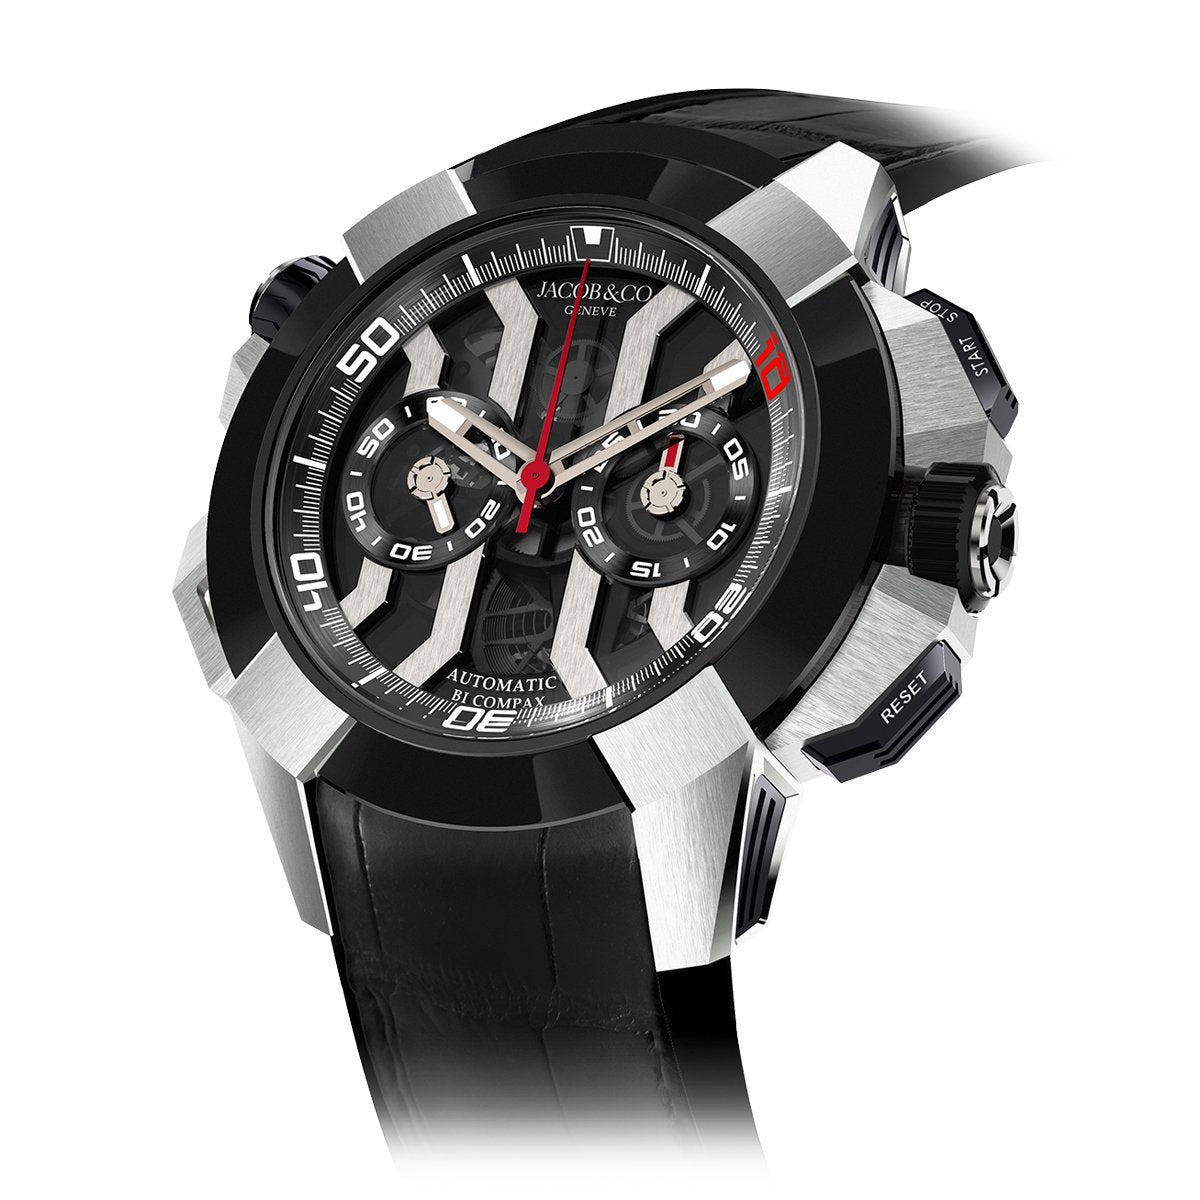 Jacob & Co. Epic X Chronograph Luis Figo Titanium - Watches & Crystals